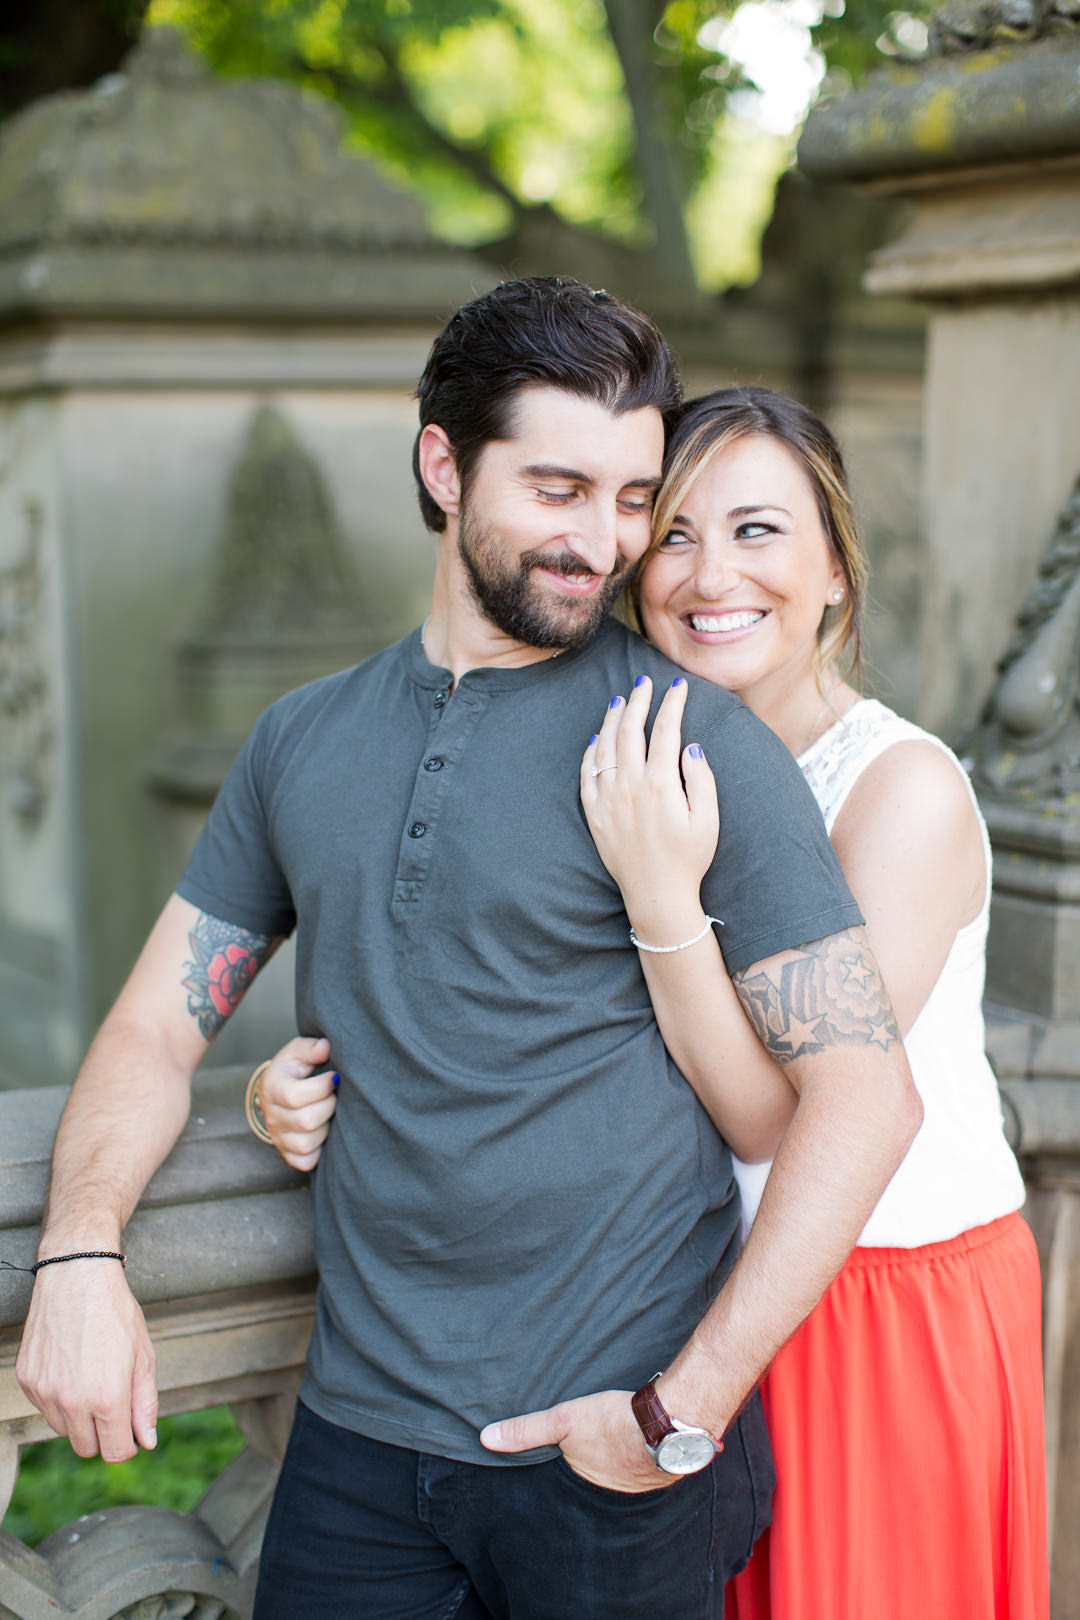 Melissa Kruse Photography - Eileen & Kenny Engagement Photos-73.jpg